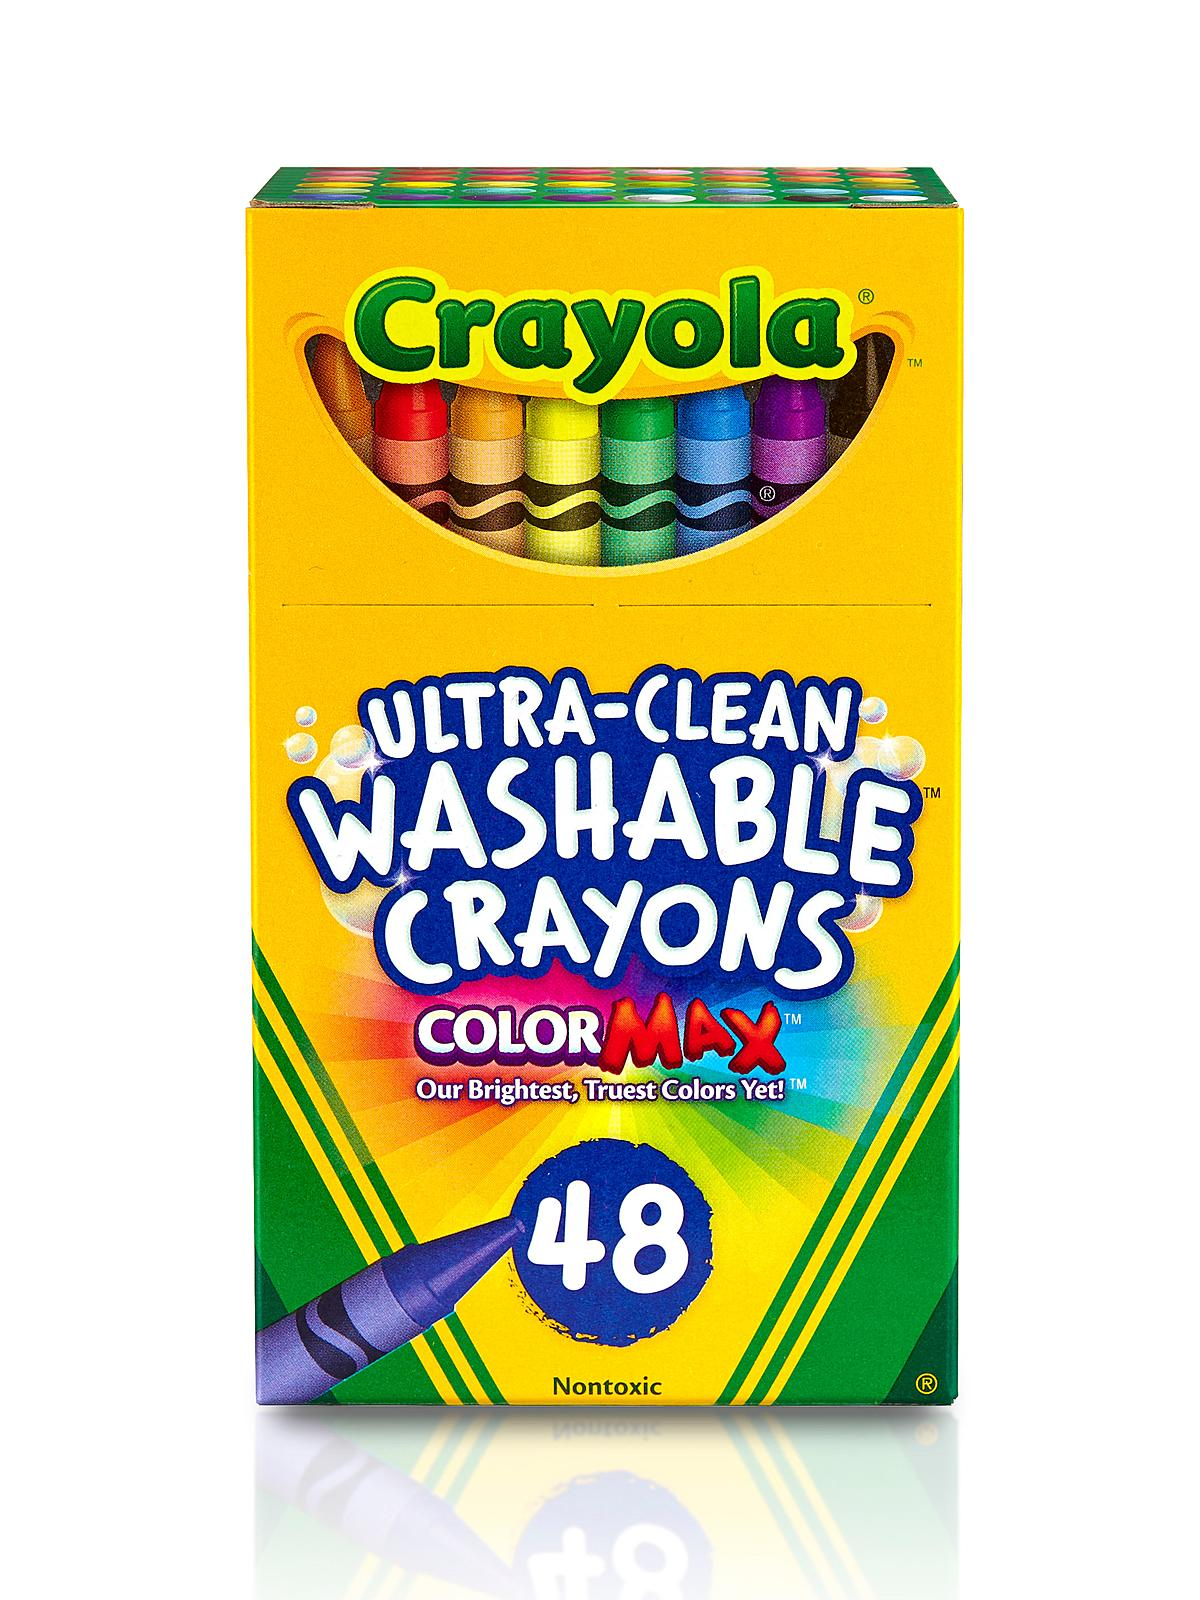 Ultra-Clean Washable Crayons